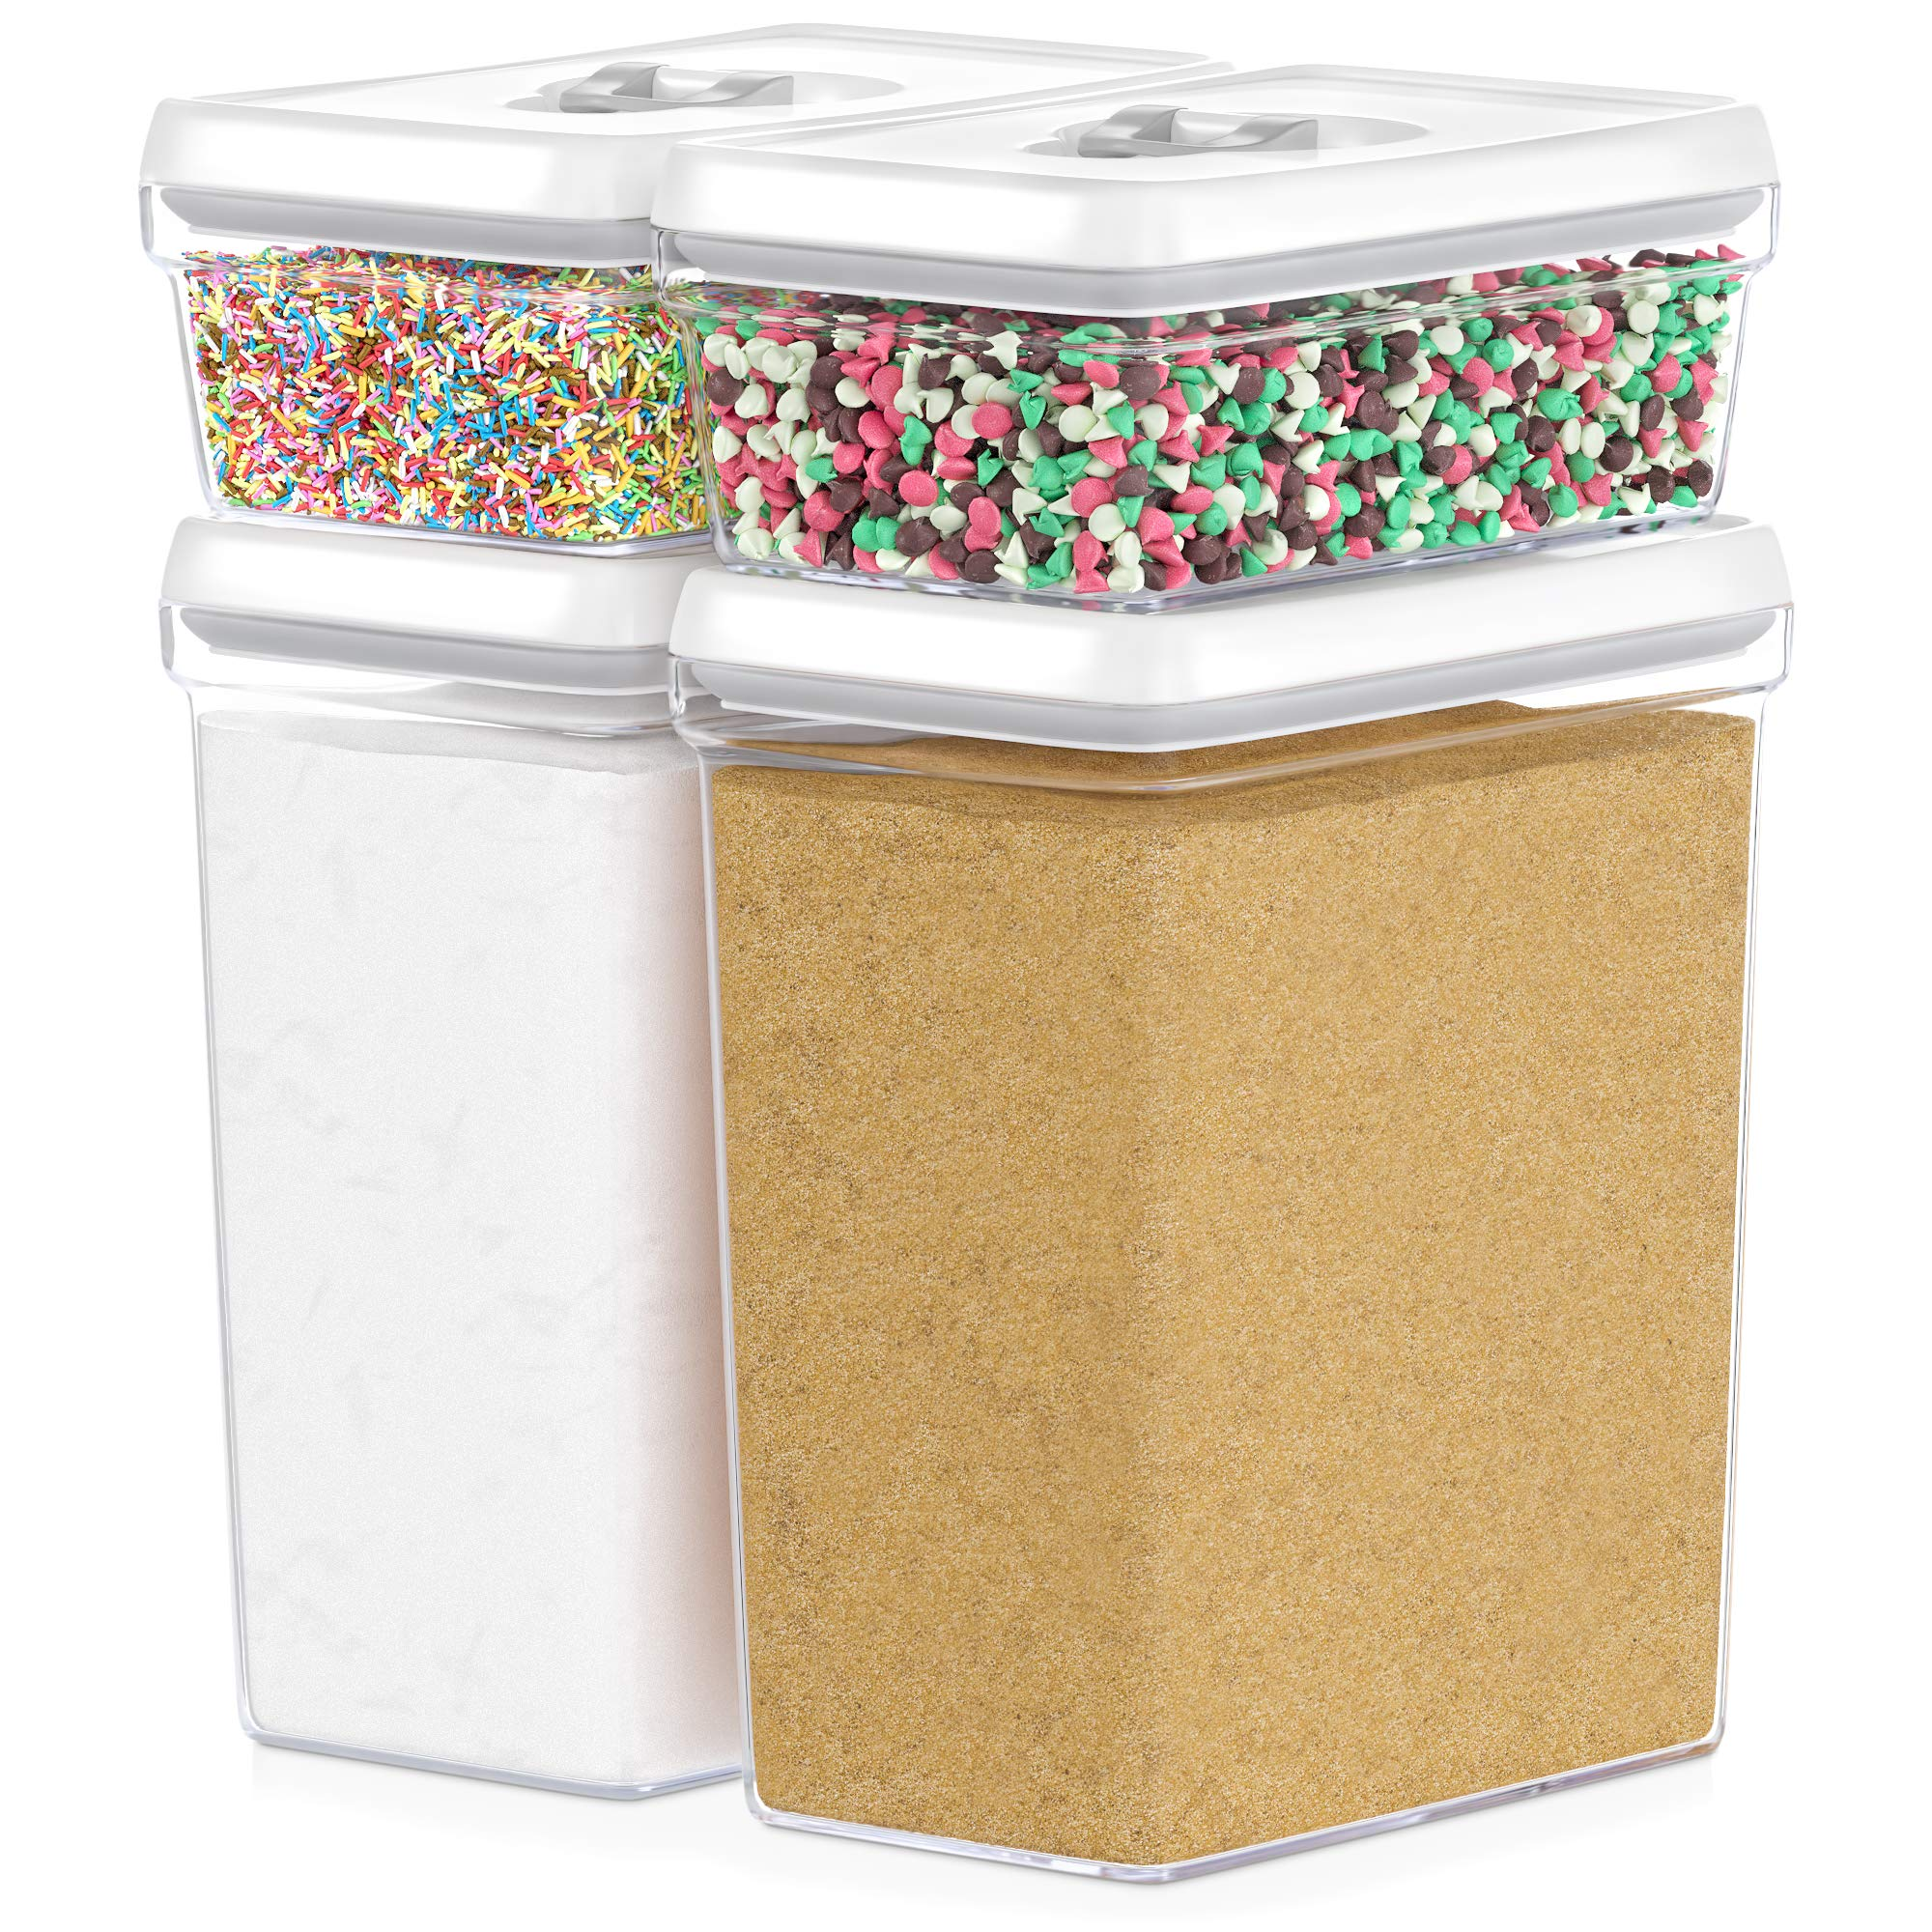 Amazon Com Dwellza Kitchen Large Airtight Food Storage Containers Bulk Food Pantry Kitchen Storage Containers For Sugar Flour And Baking Supplies 4 Pc Set Clear Plastic Bpa Free Keeps Fresh